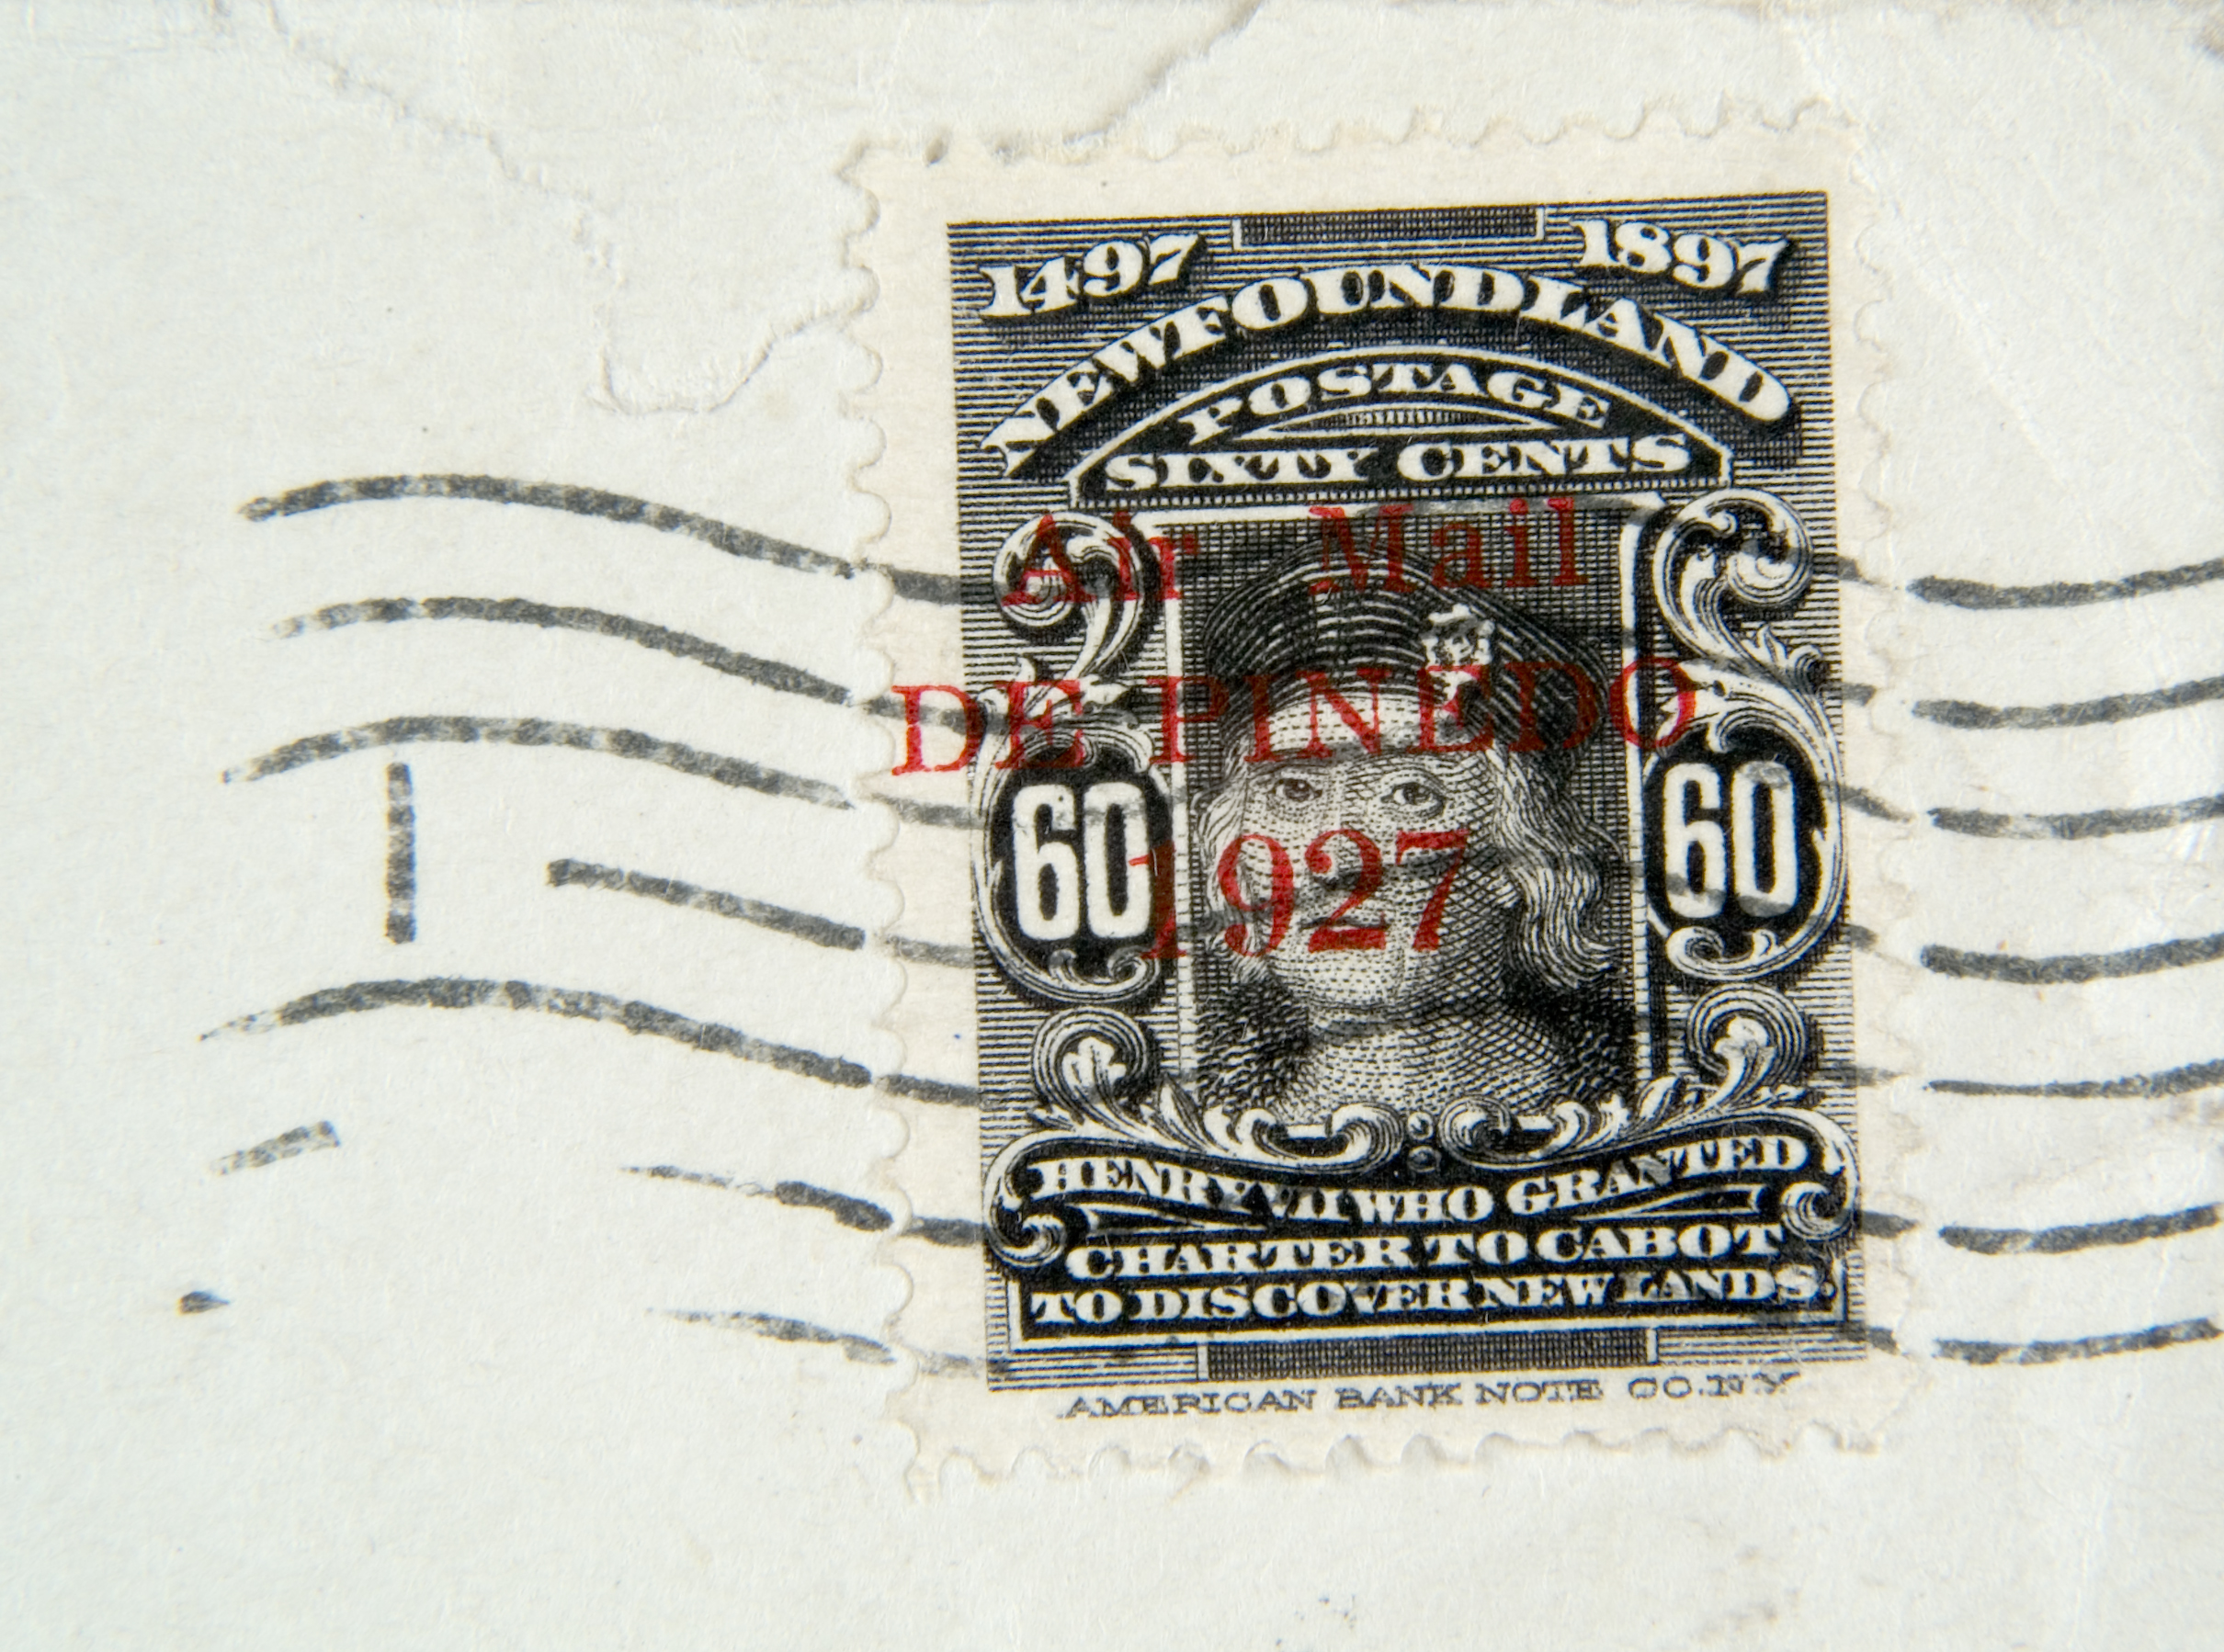 Commission: Methuen / The Queens Stamp Collection